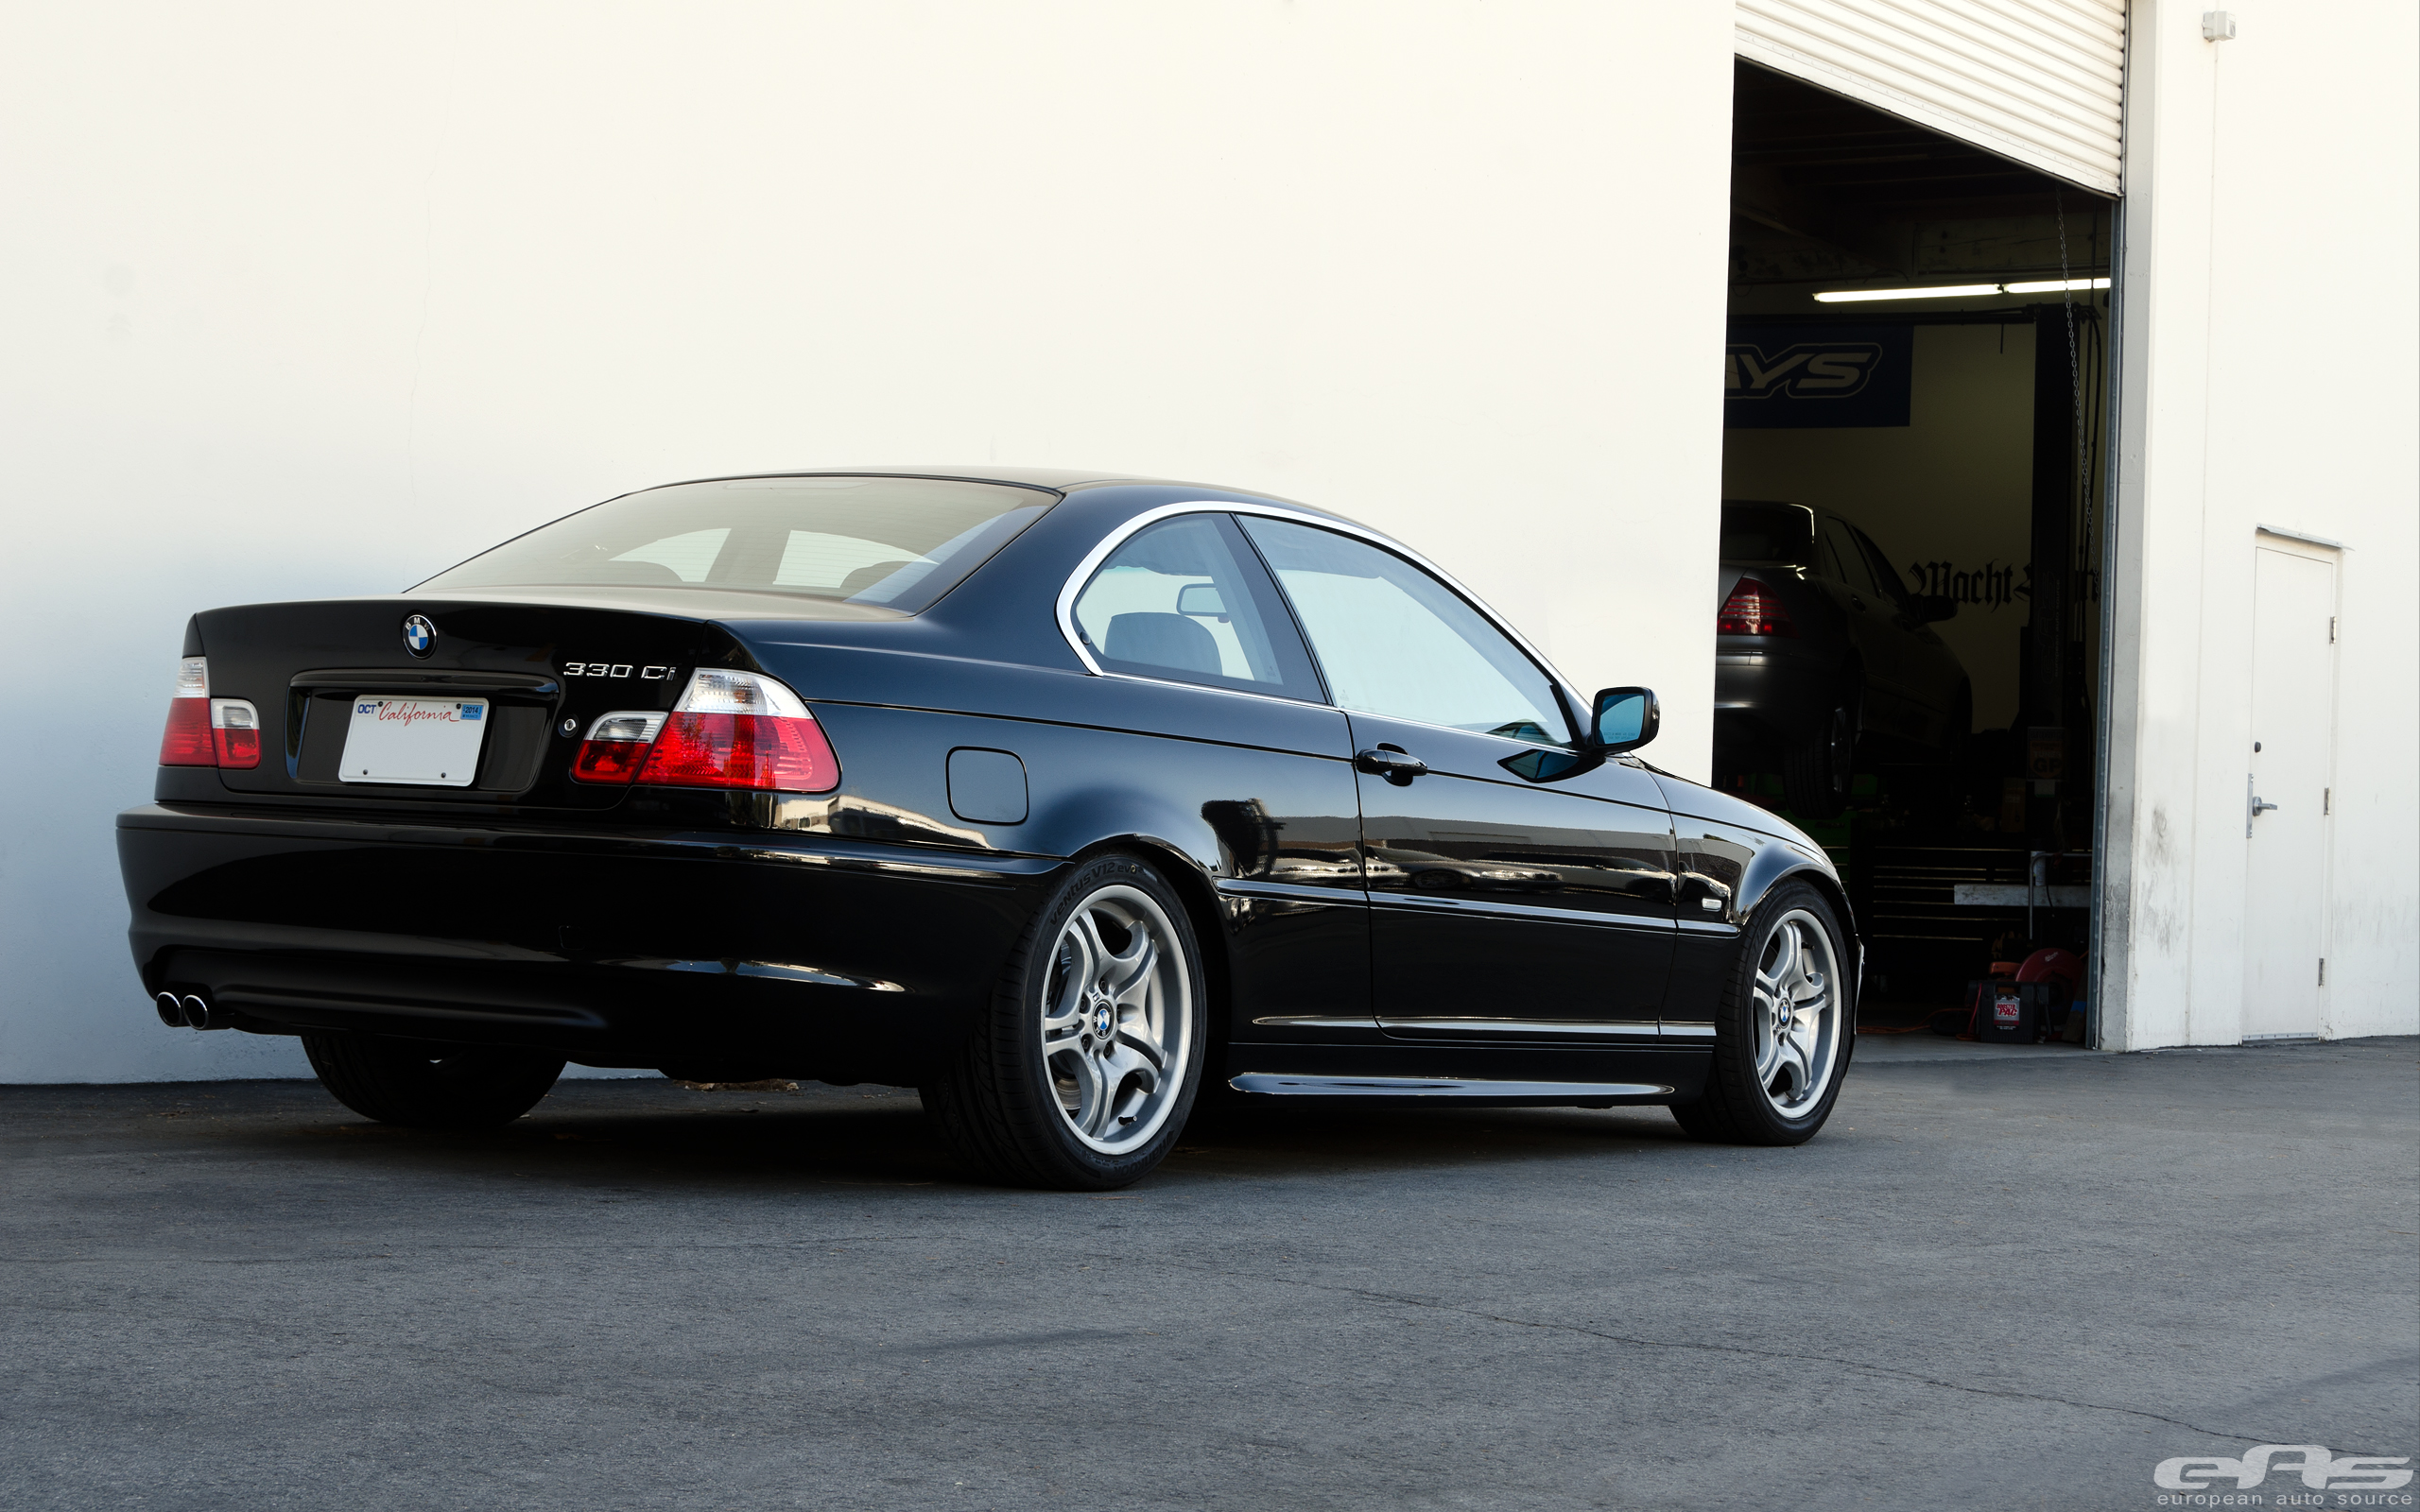 bmw e46 330ci performance parts. Black Bedroom Furniture Sets. Home Design Ideas